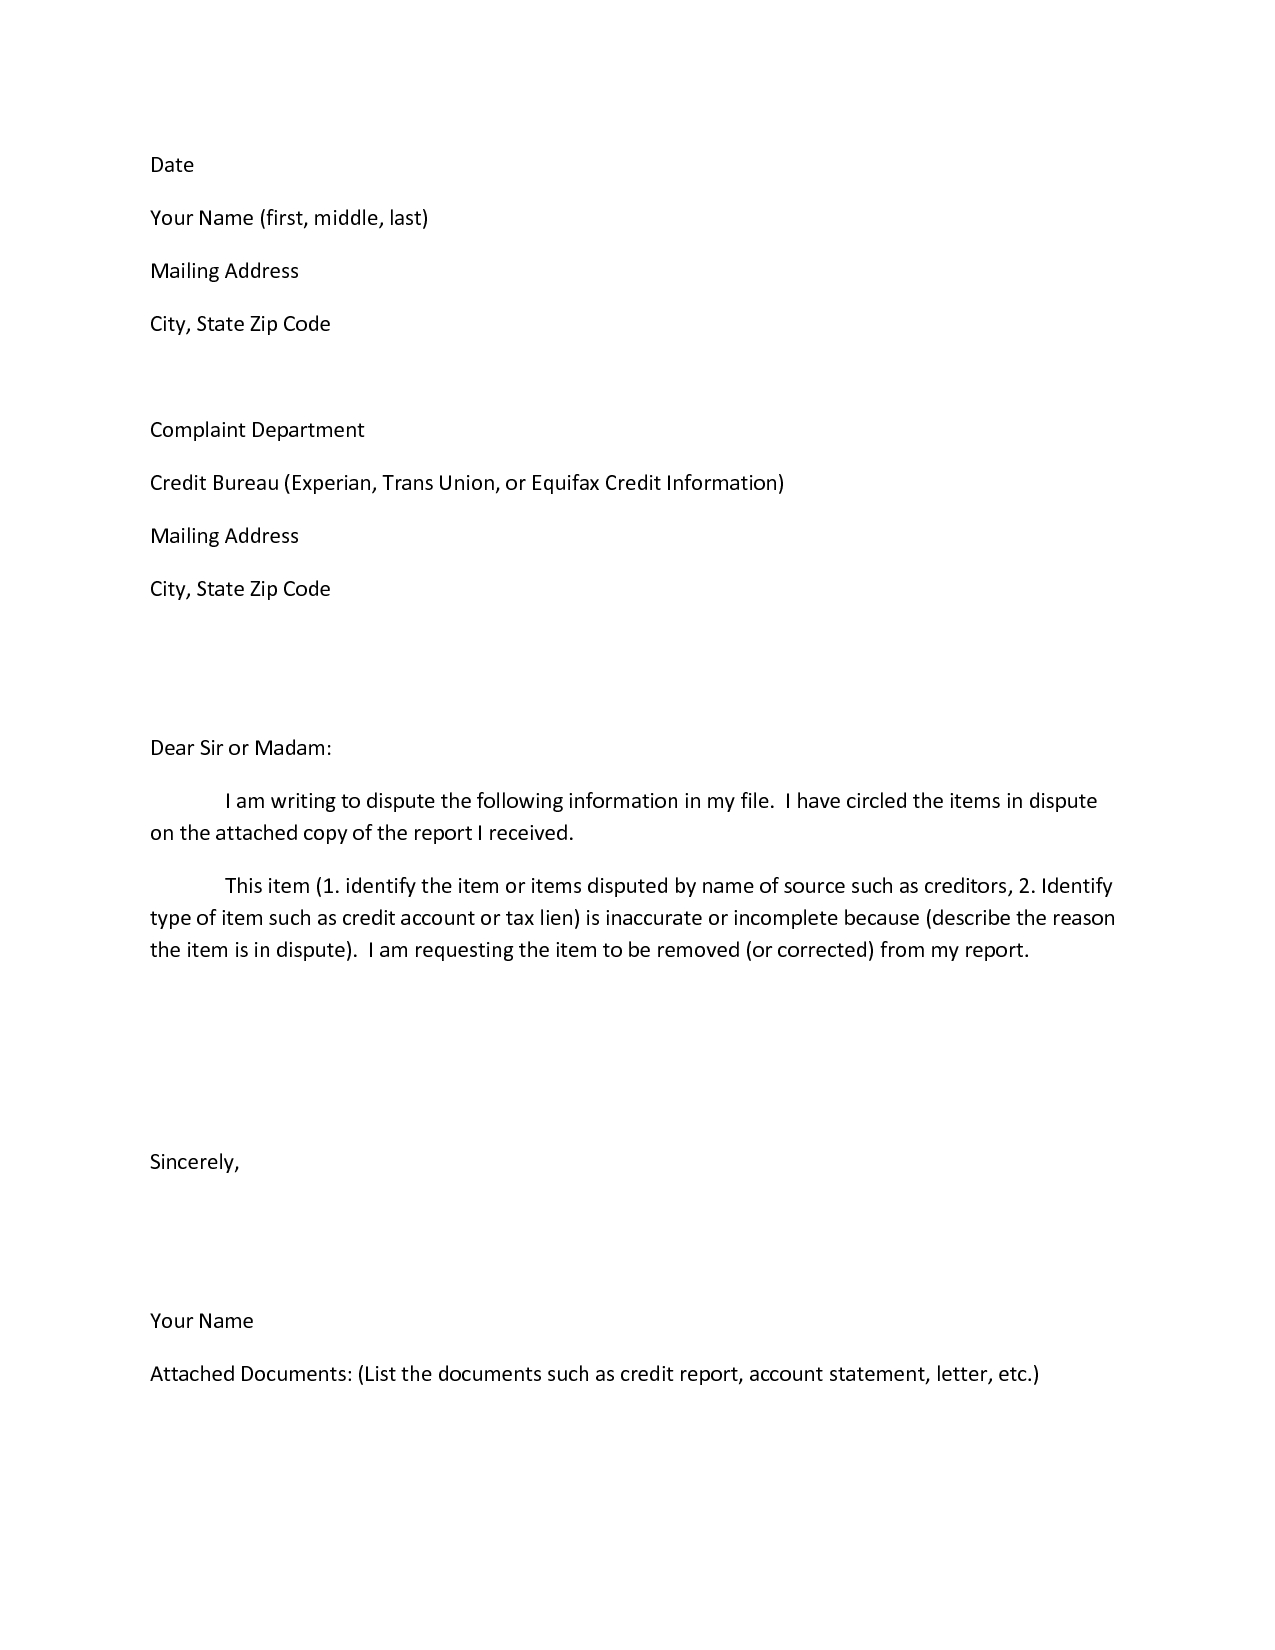 Dispute Letter to Credit Bureau Template - How to Write Letter to Dispute Credit Report Choice Image Letter